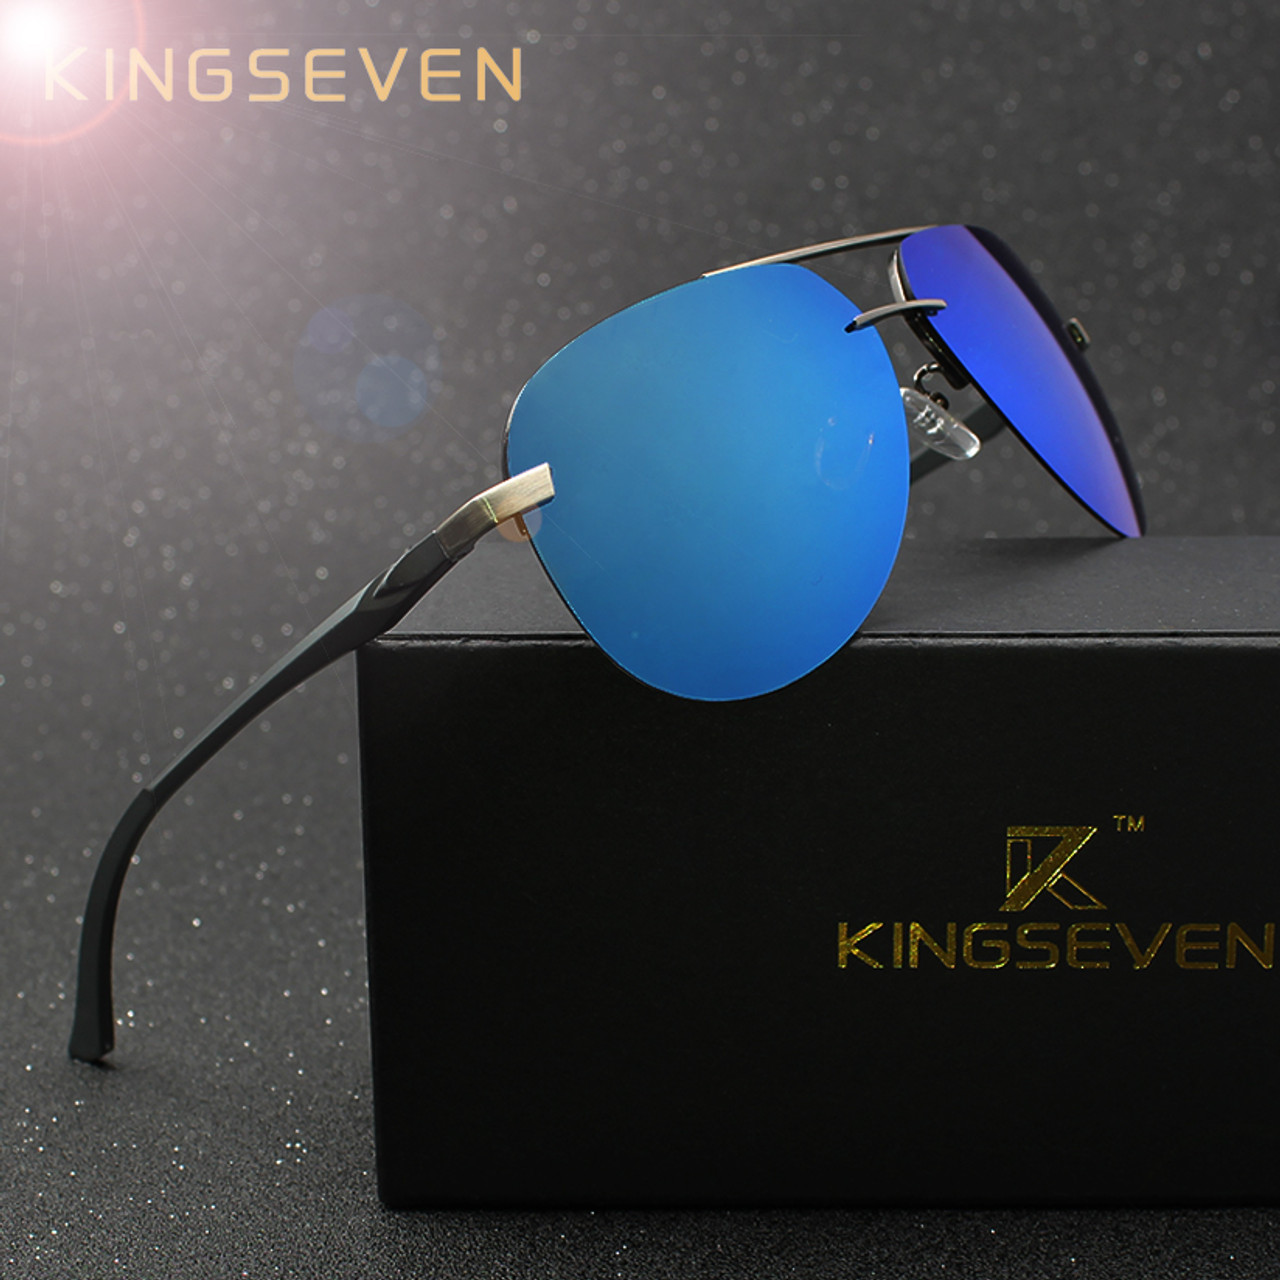 536c5e6aa39 KINGSEVEN Aluminum Magnesium Polarized Sunglasses Men Driver Mirror Sun  glasses Male Fishing Female Eyewear For Men ...